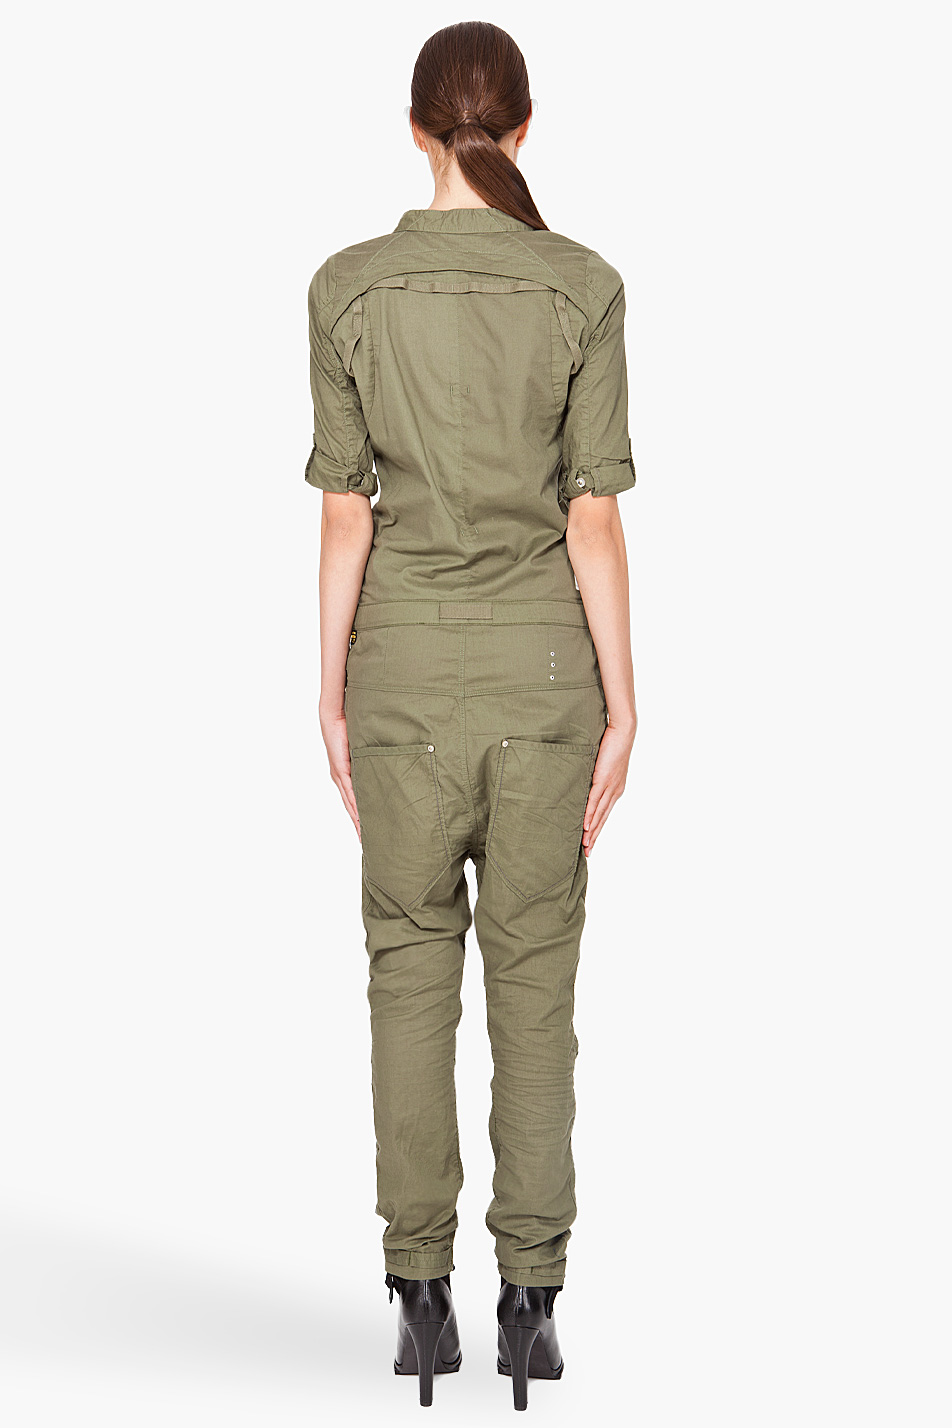 Lyst - G-Star RAW Laundry Officer Flight Suit in Green a5be5a5bb